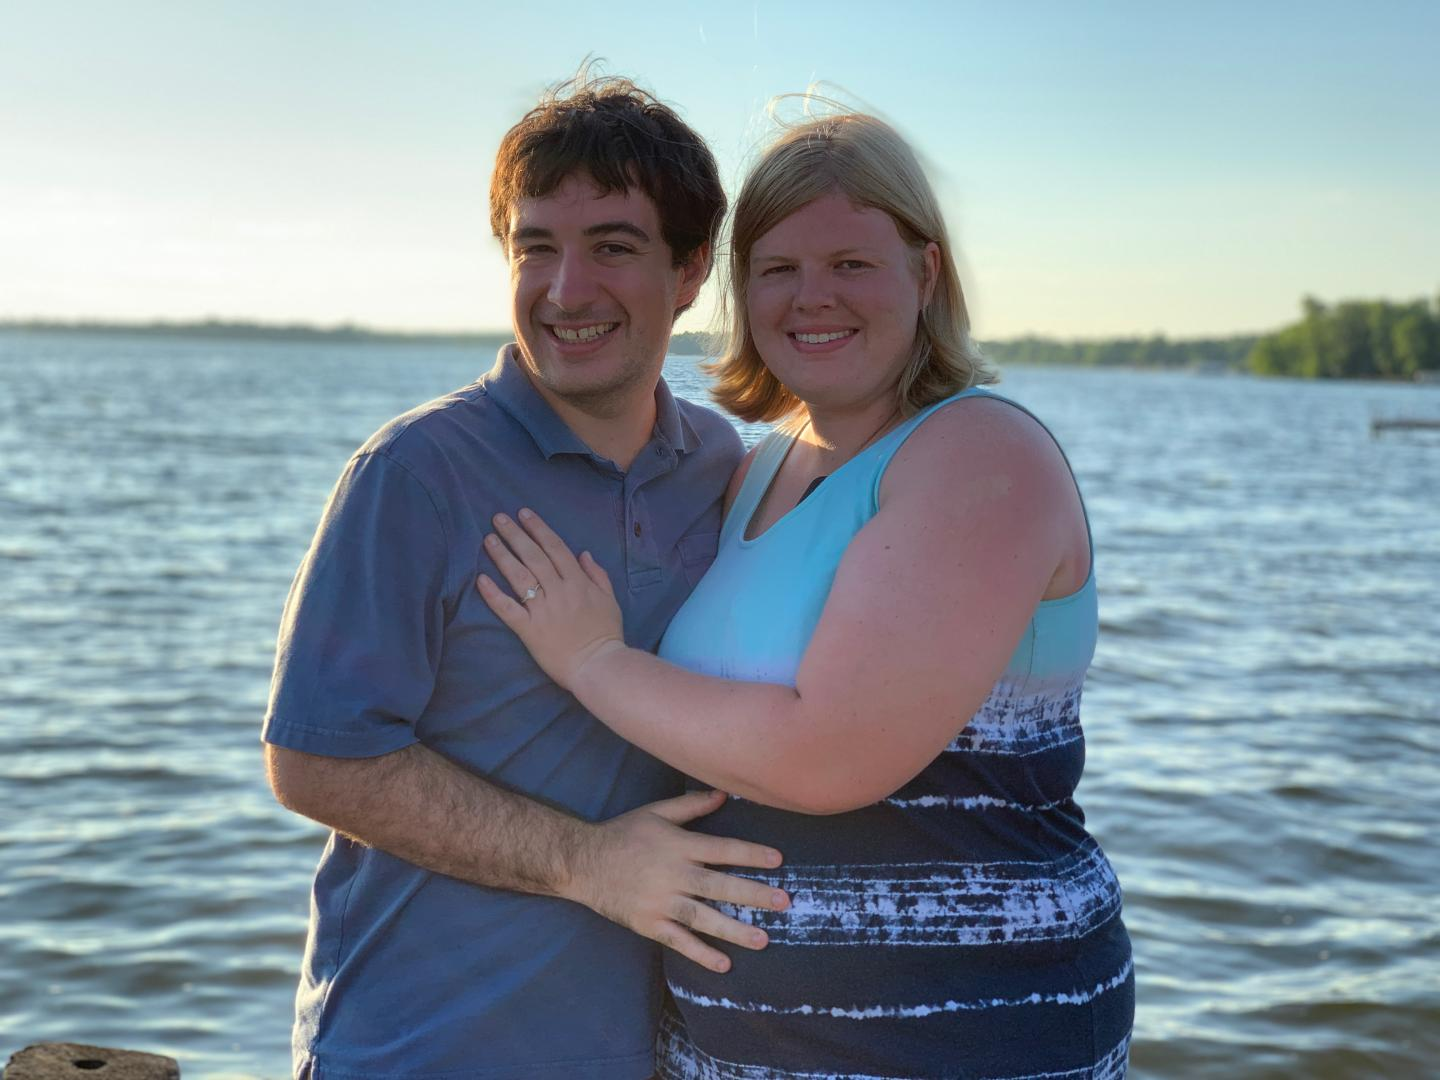 Andrew Muise and Stephanie Quist's Honeymoon Registry